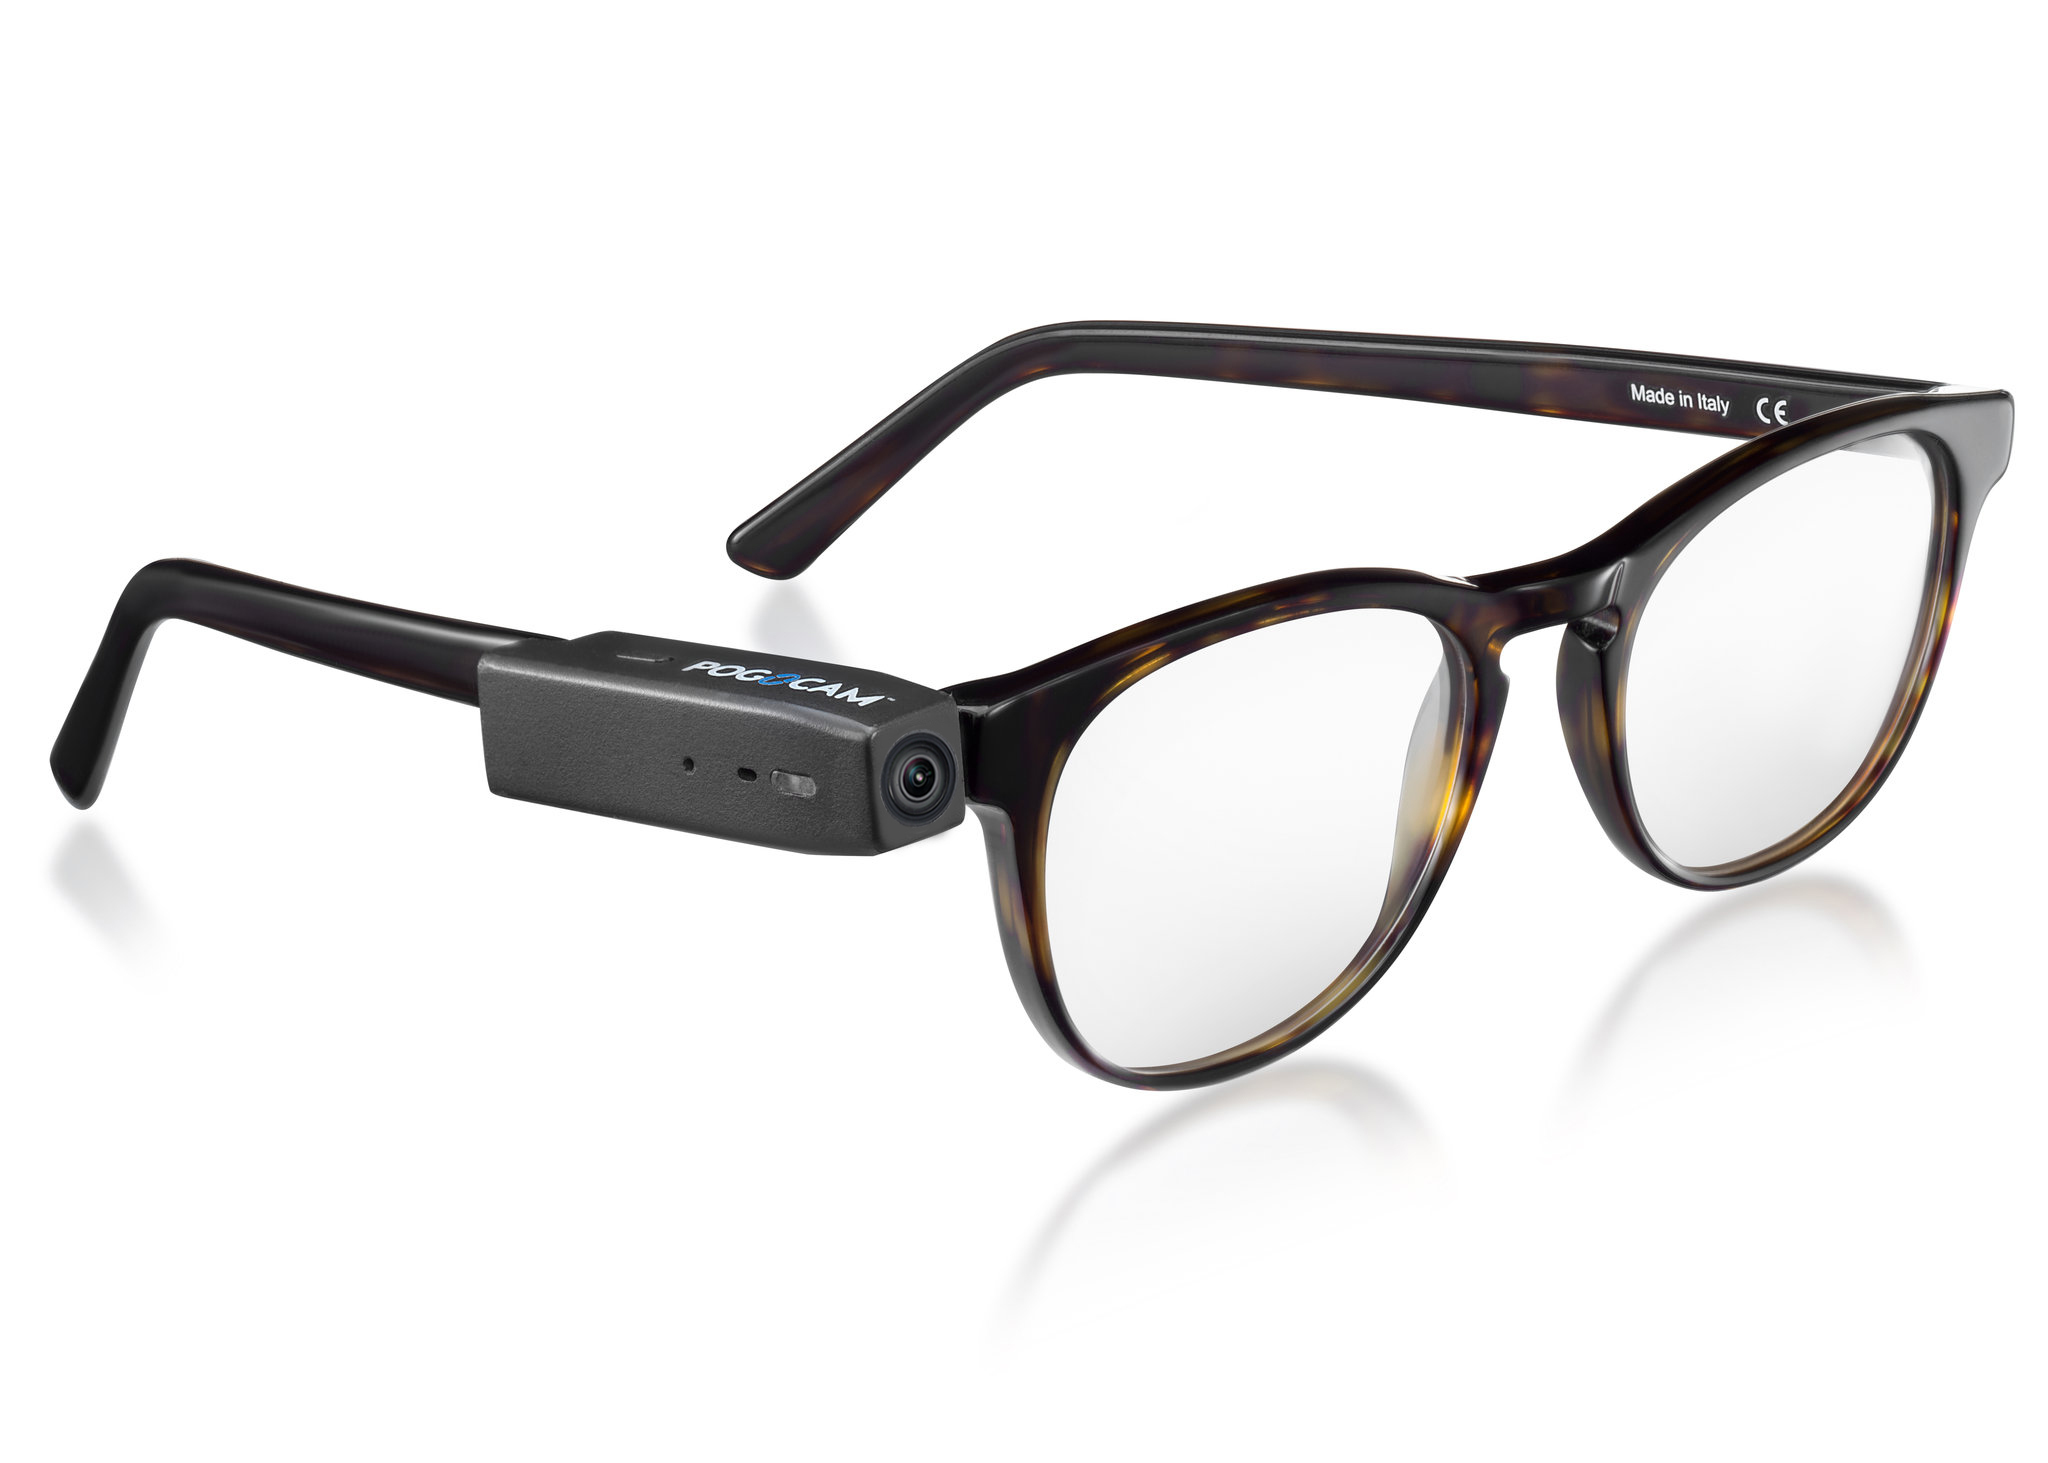 Glasses Frames Las Vegas : World s Smallest Attachable Eyewear Camera Comes to the ...